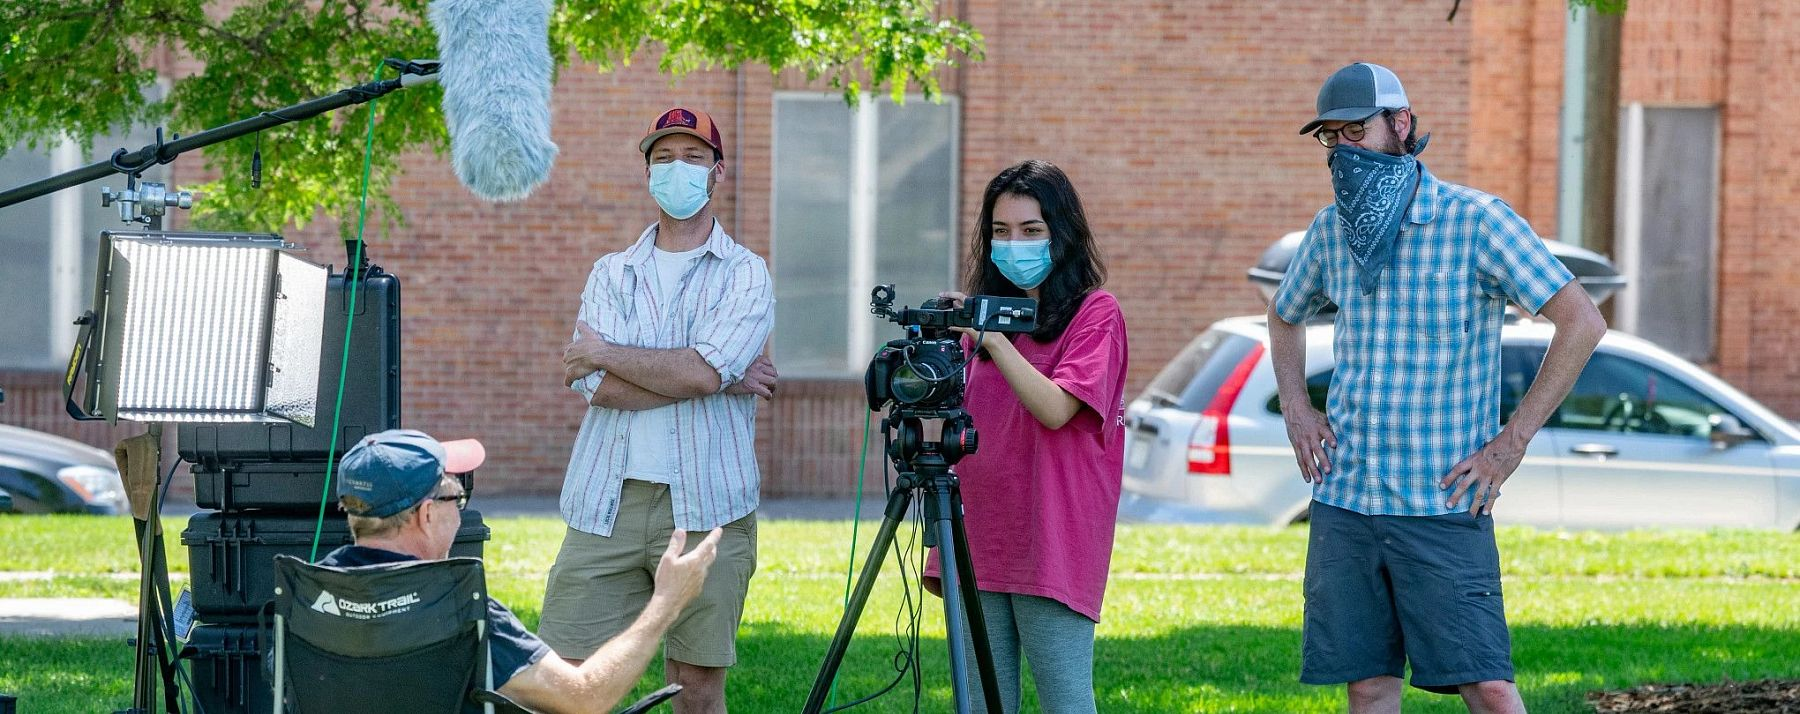 MFJS students filming during their course as they created an environmental documentary.